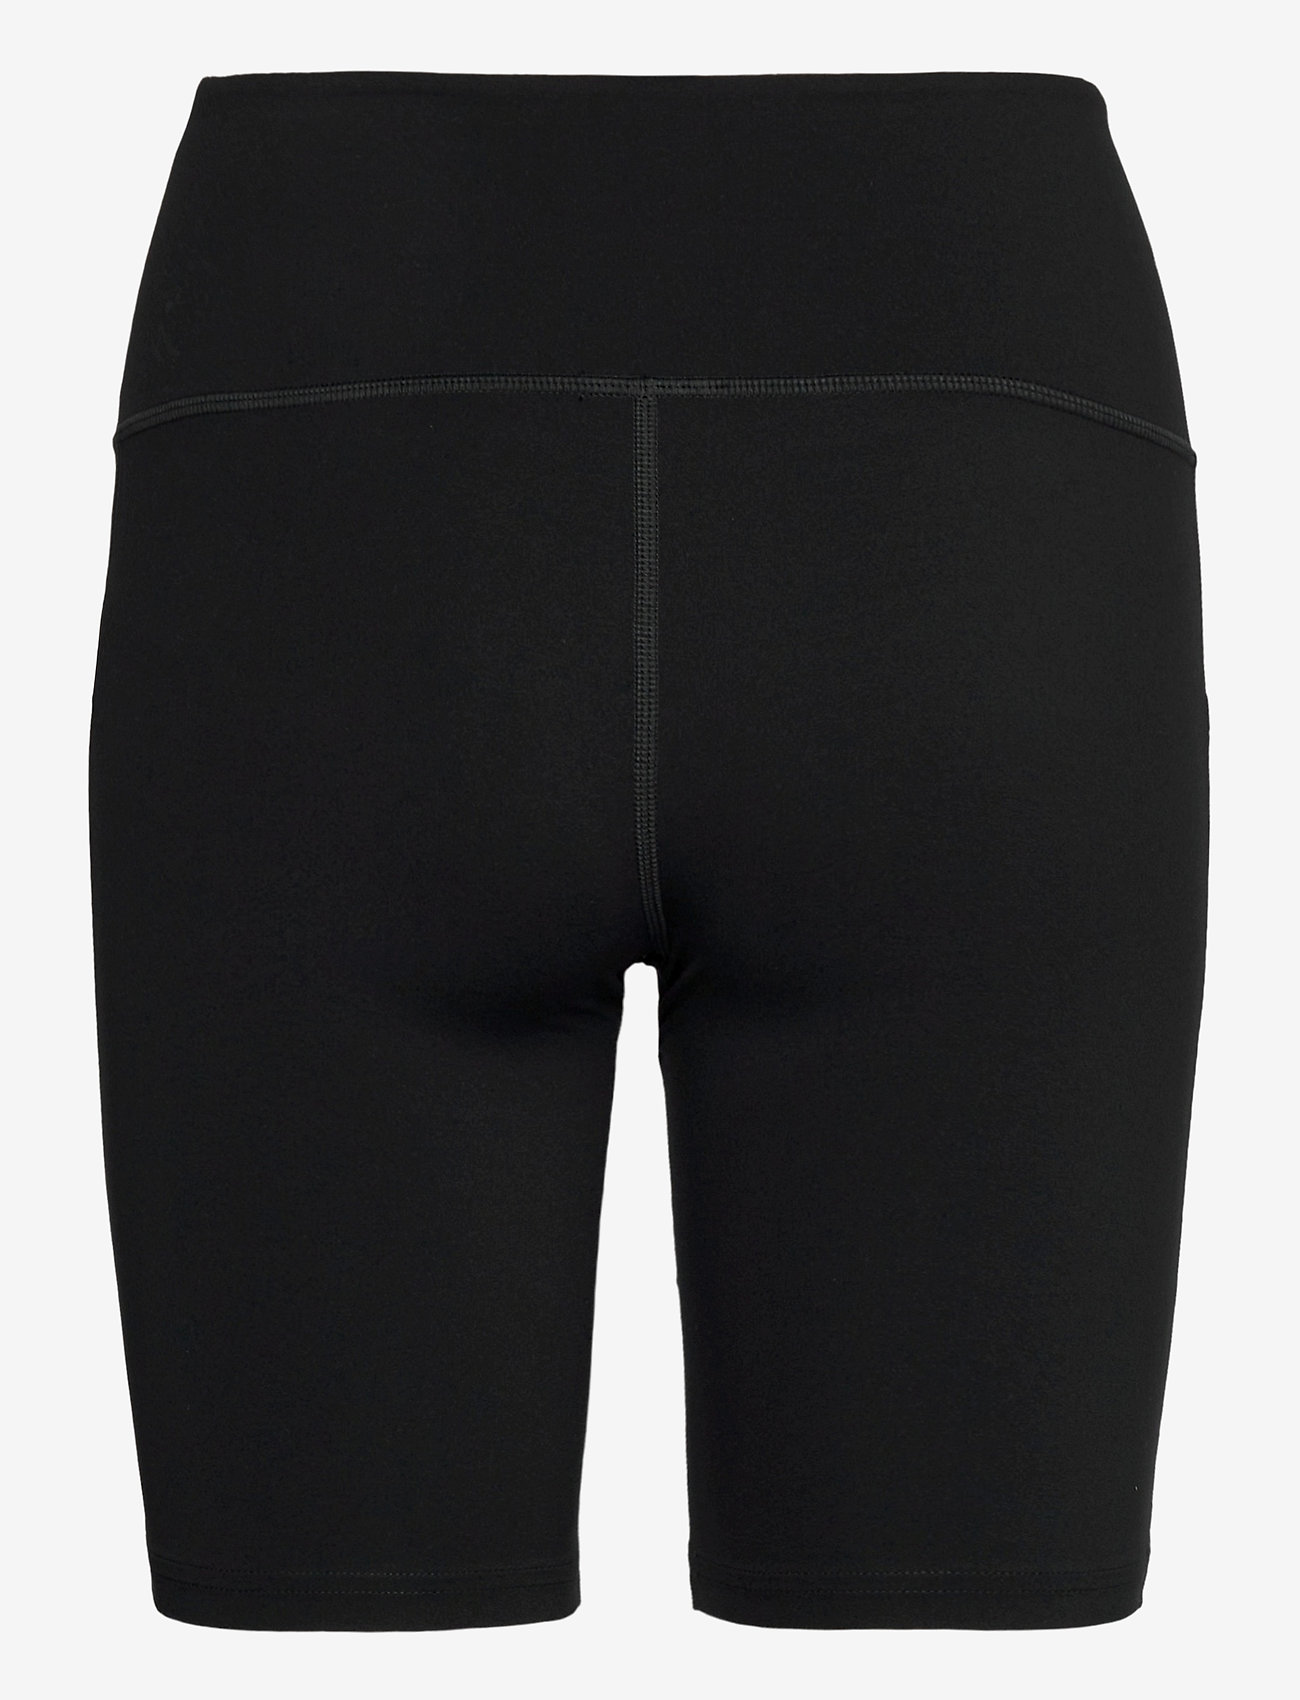 2XU - FORM STASH HI-RISE BIKE SHORT - training korte broek - black/black - 1